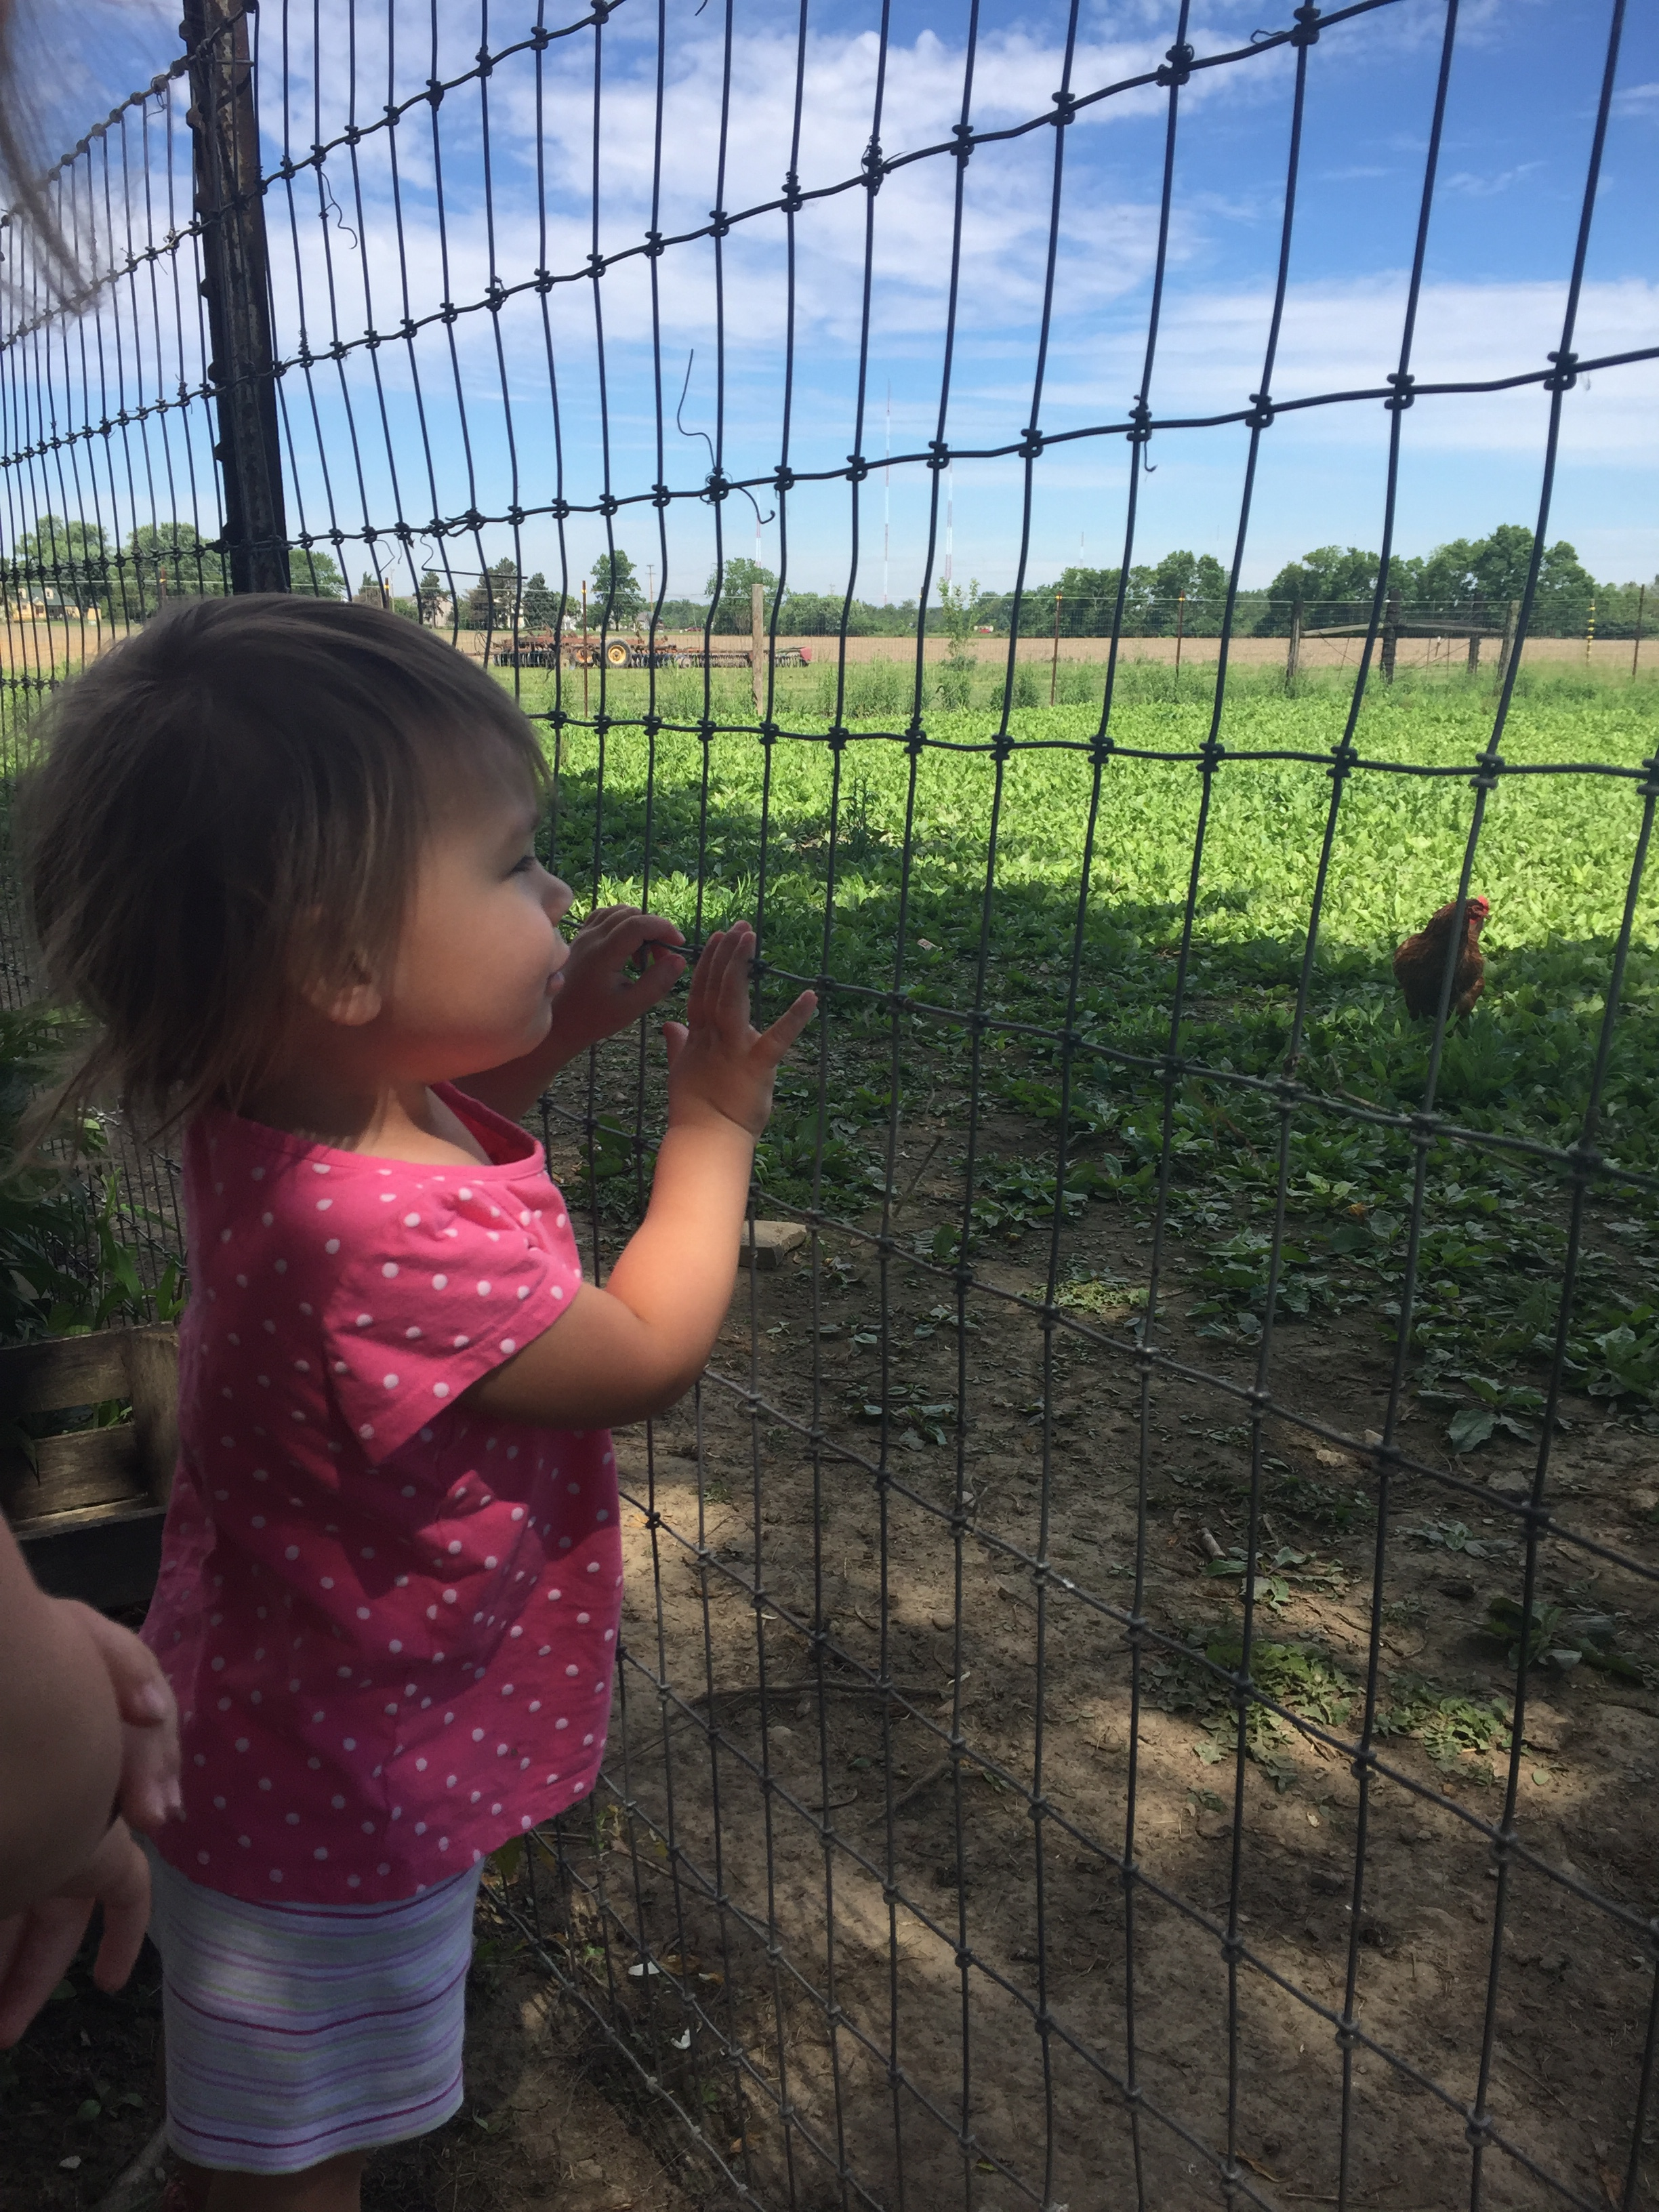 Strawberry picking is an awesome summer activity for kids and families! Get outdoors and enjoy the sunshine while eating healthy and teaching kids about where food comes from!